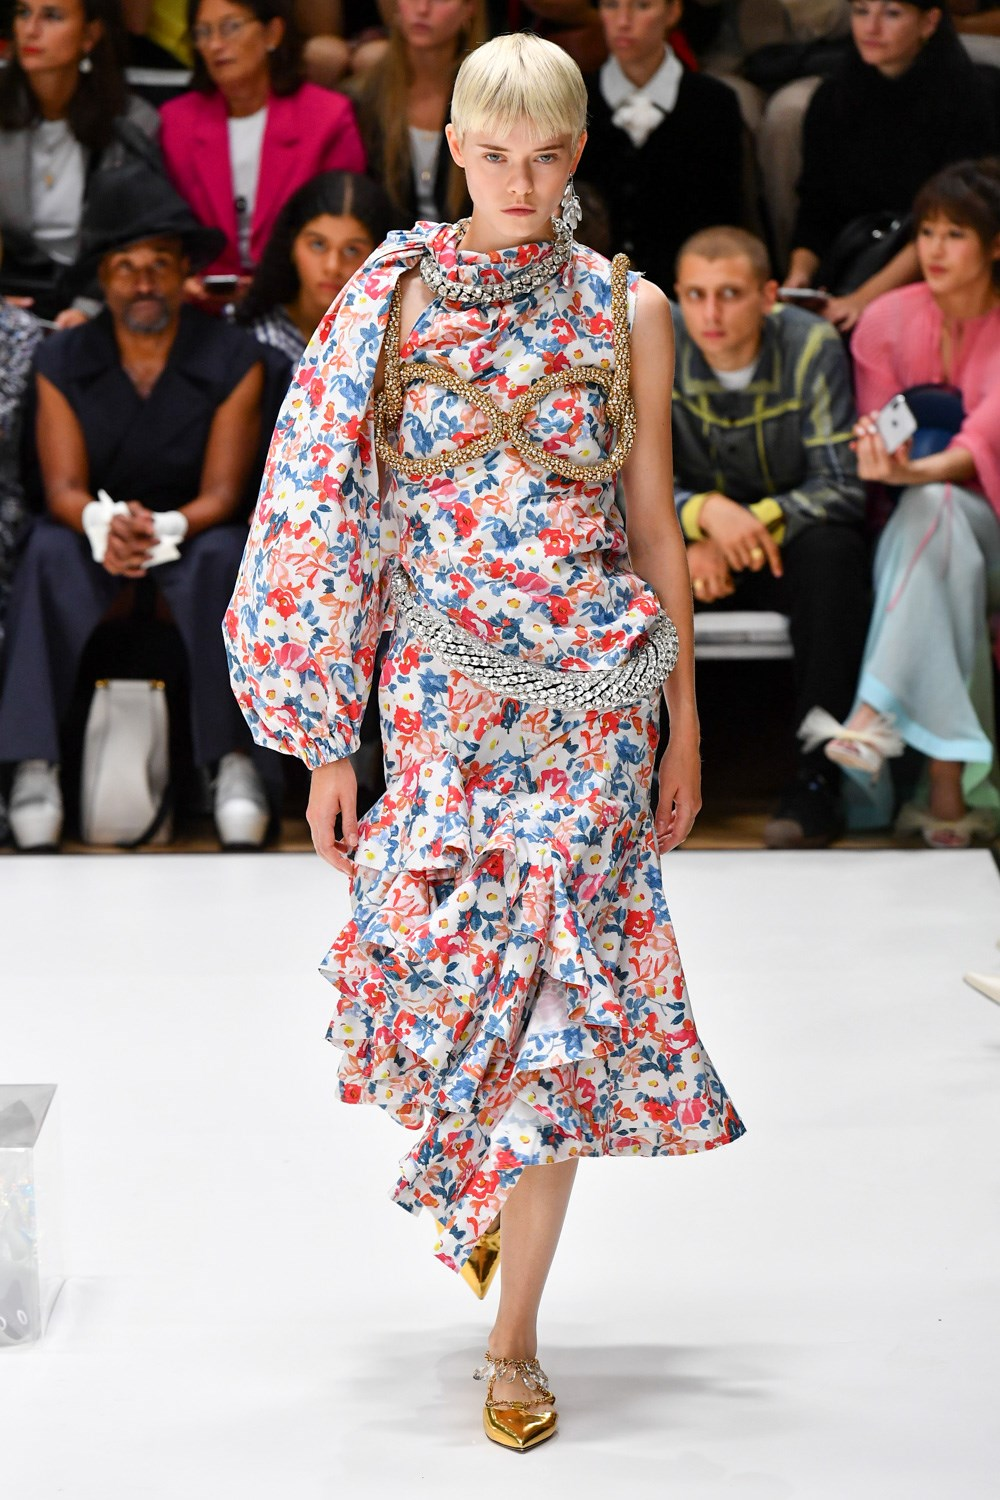 Top 10 'Other' Spring 2020 Fashion Shows